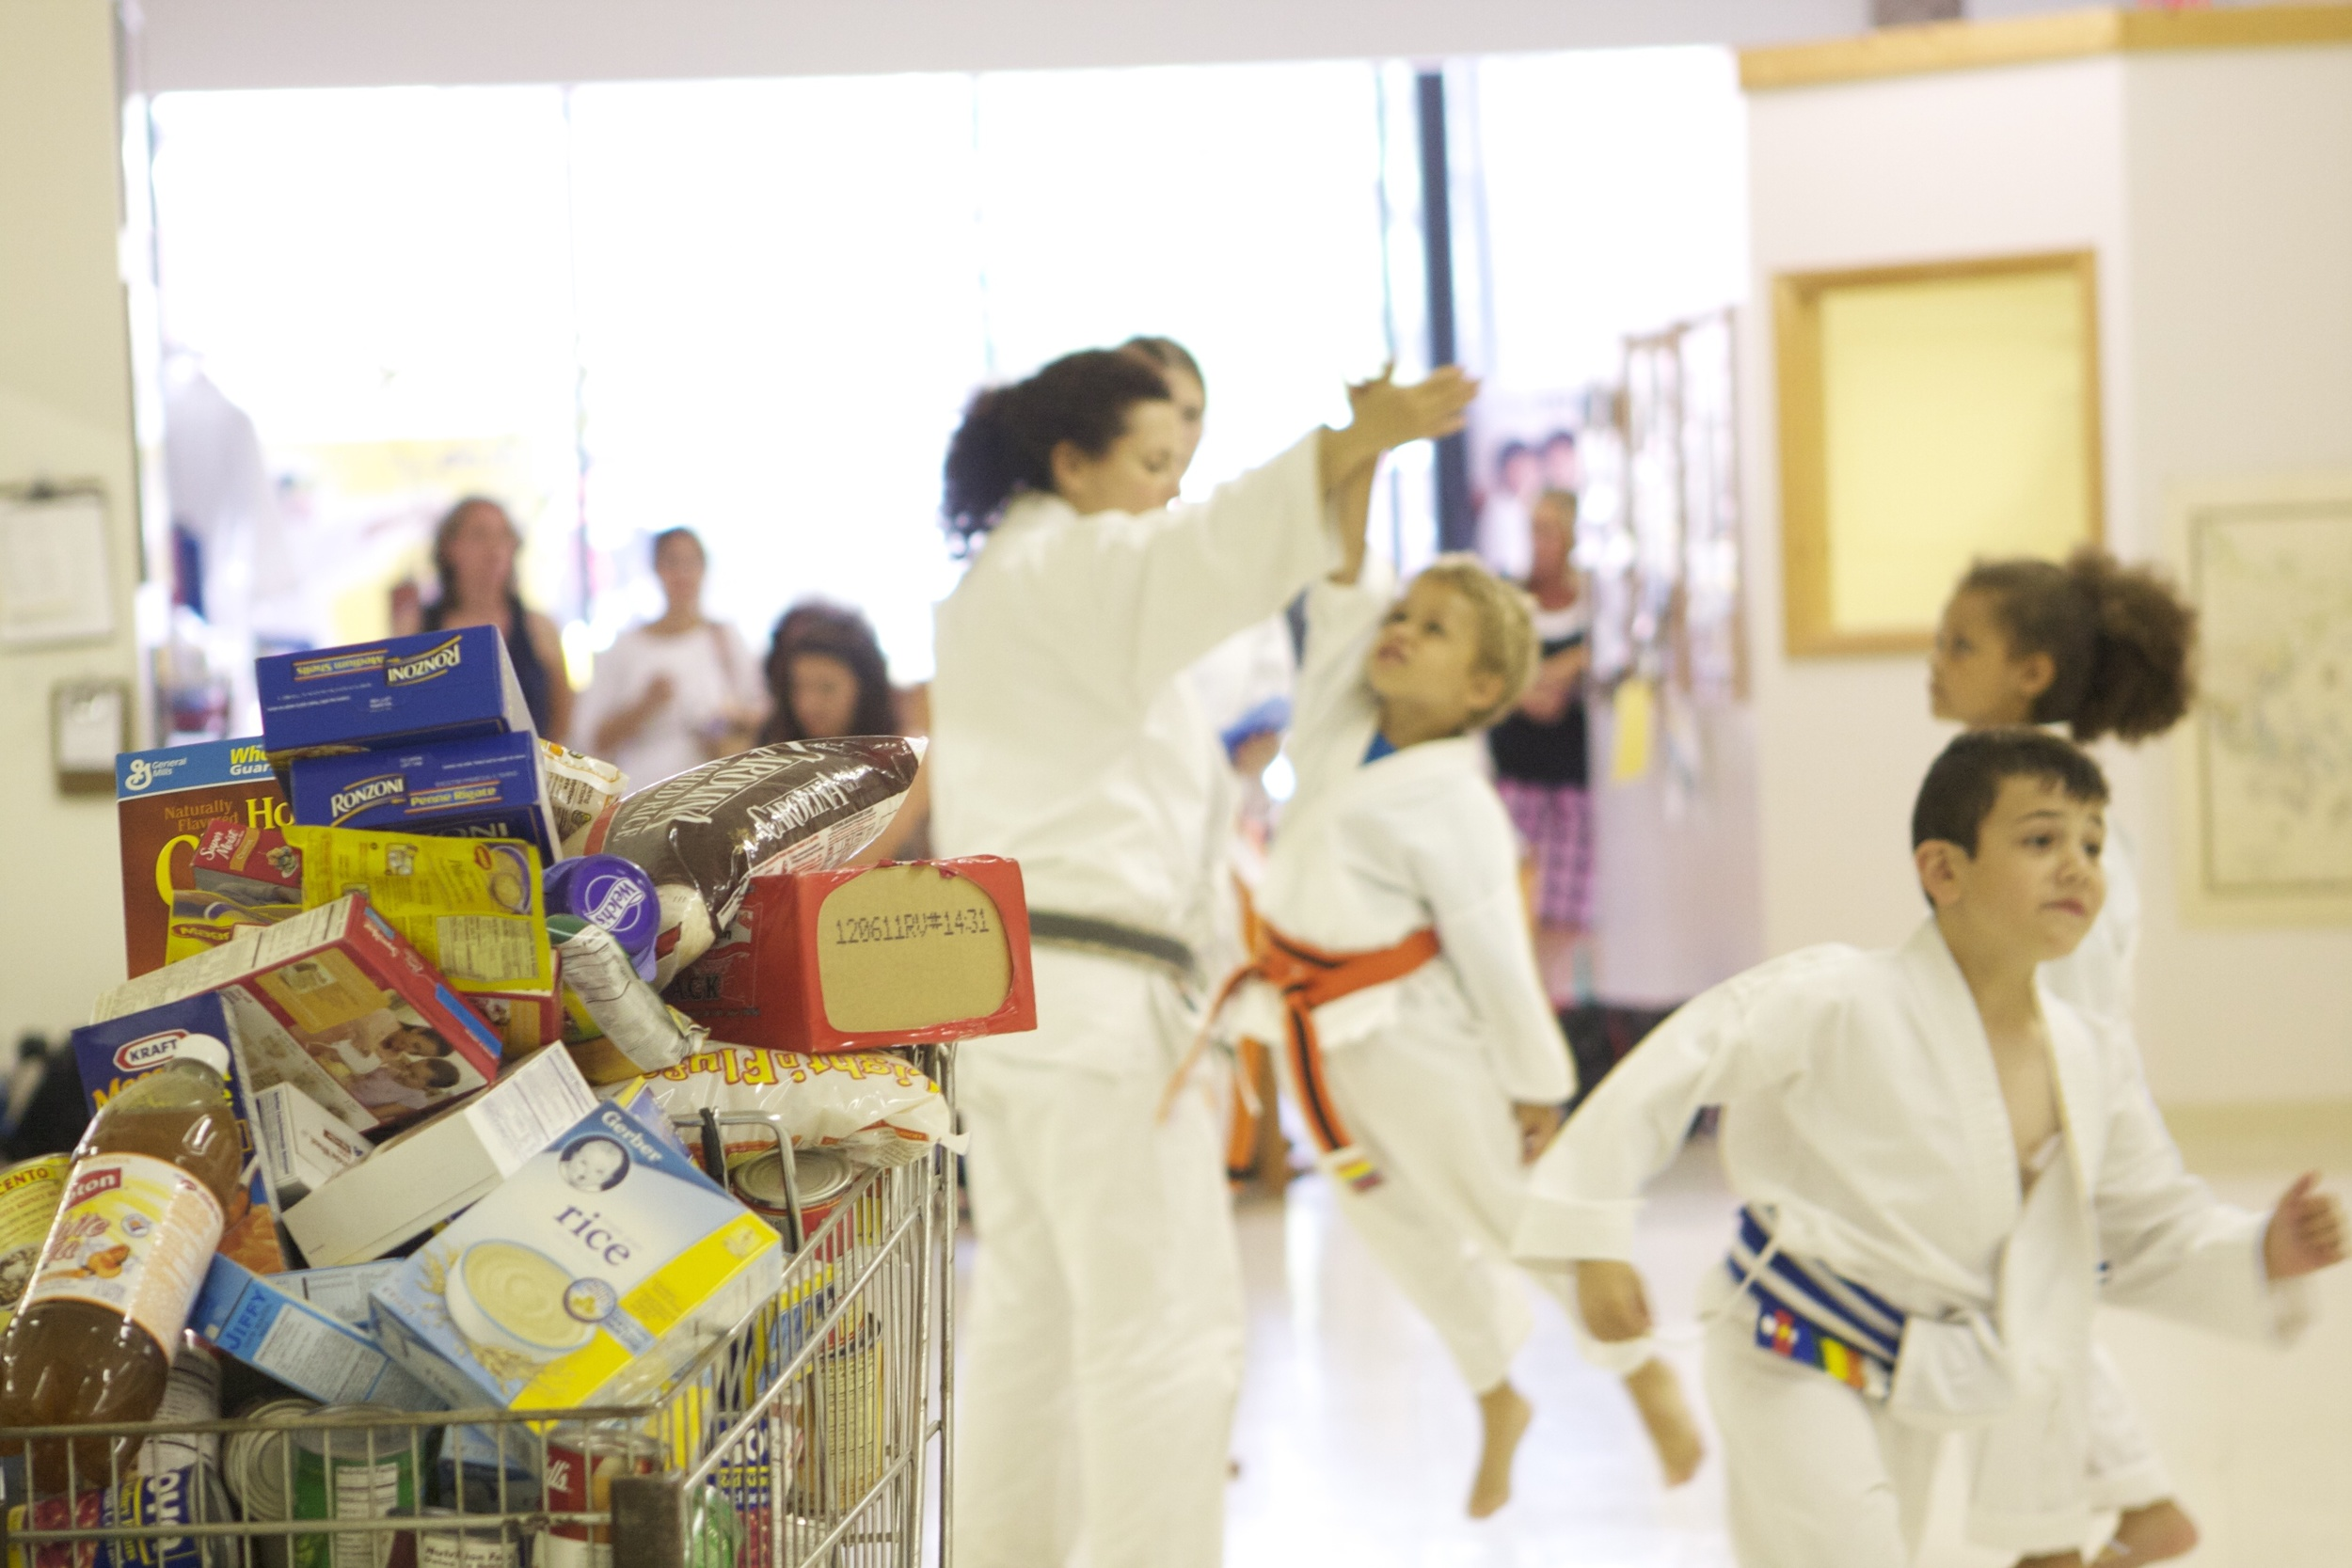 thedojo-food-drive-martial-arts-karate-kids-doing-community-service-in-rutherford-nj_14484488708_o.jpg